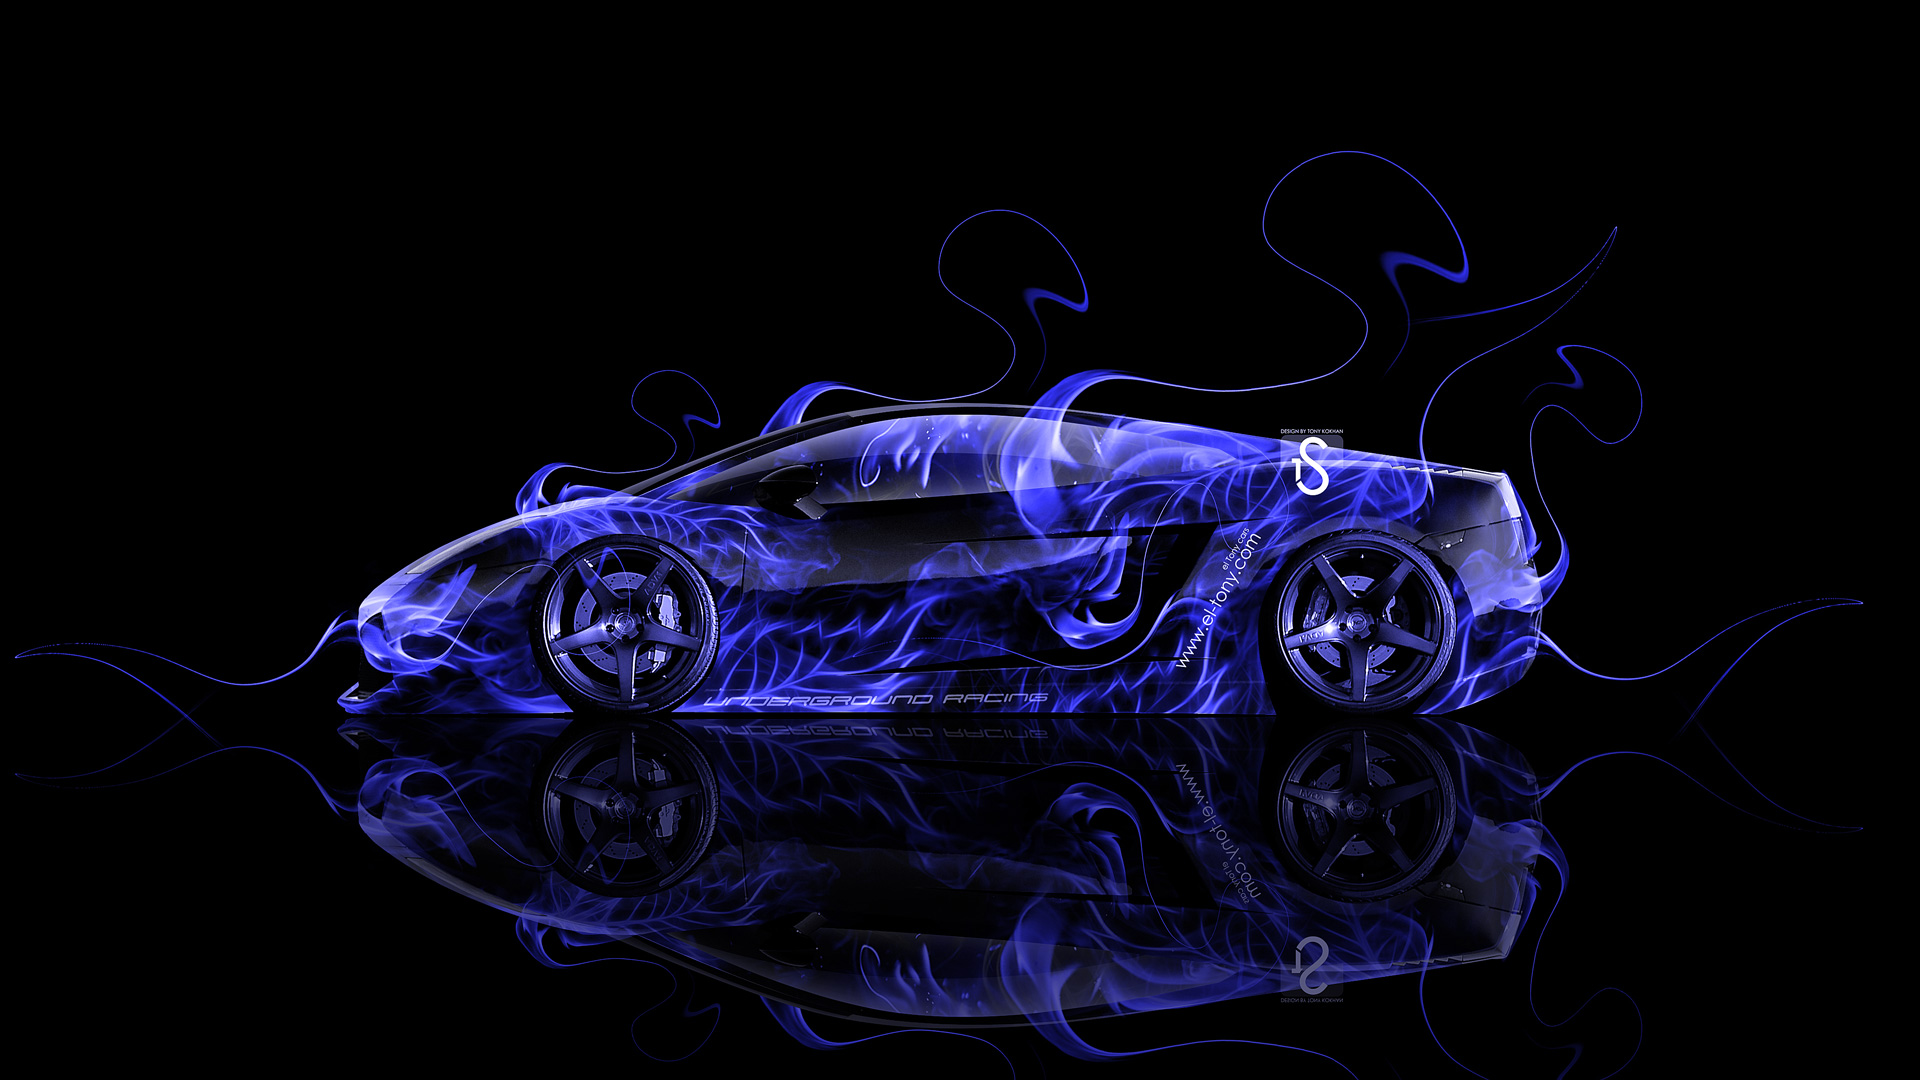 lamborghini gallardo side blue fire abstract car 2014 - Lamborghini Gallardo Wallpaper Blue